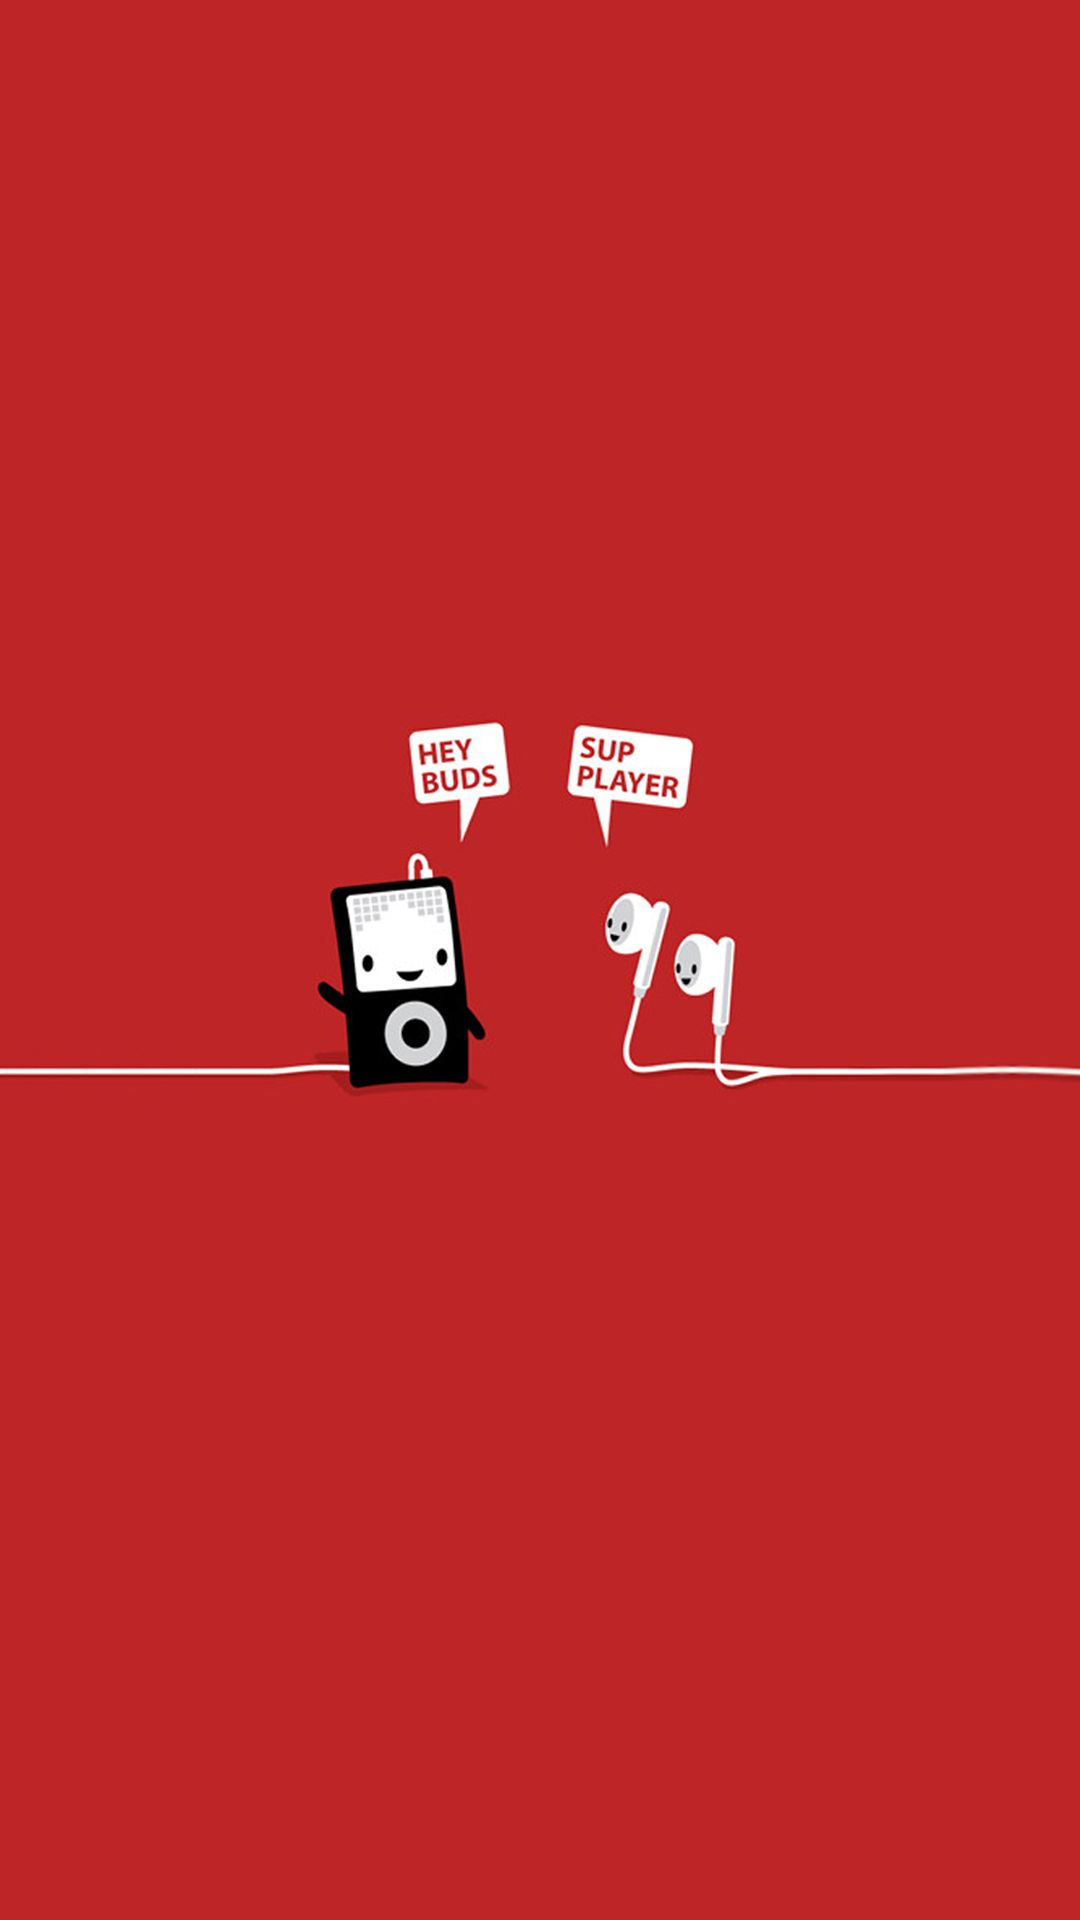 Funny Music Headphones Player Buds Iphone 6 Hd Wallpaper Headers